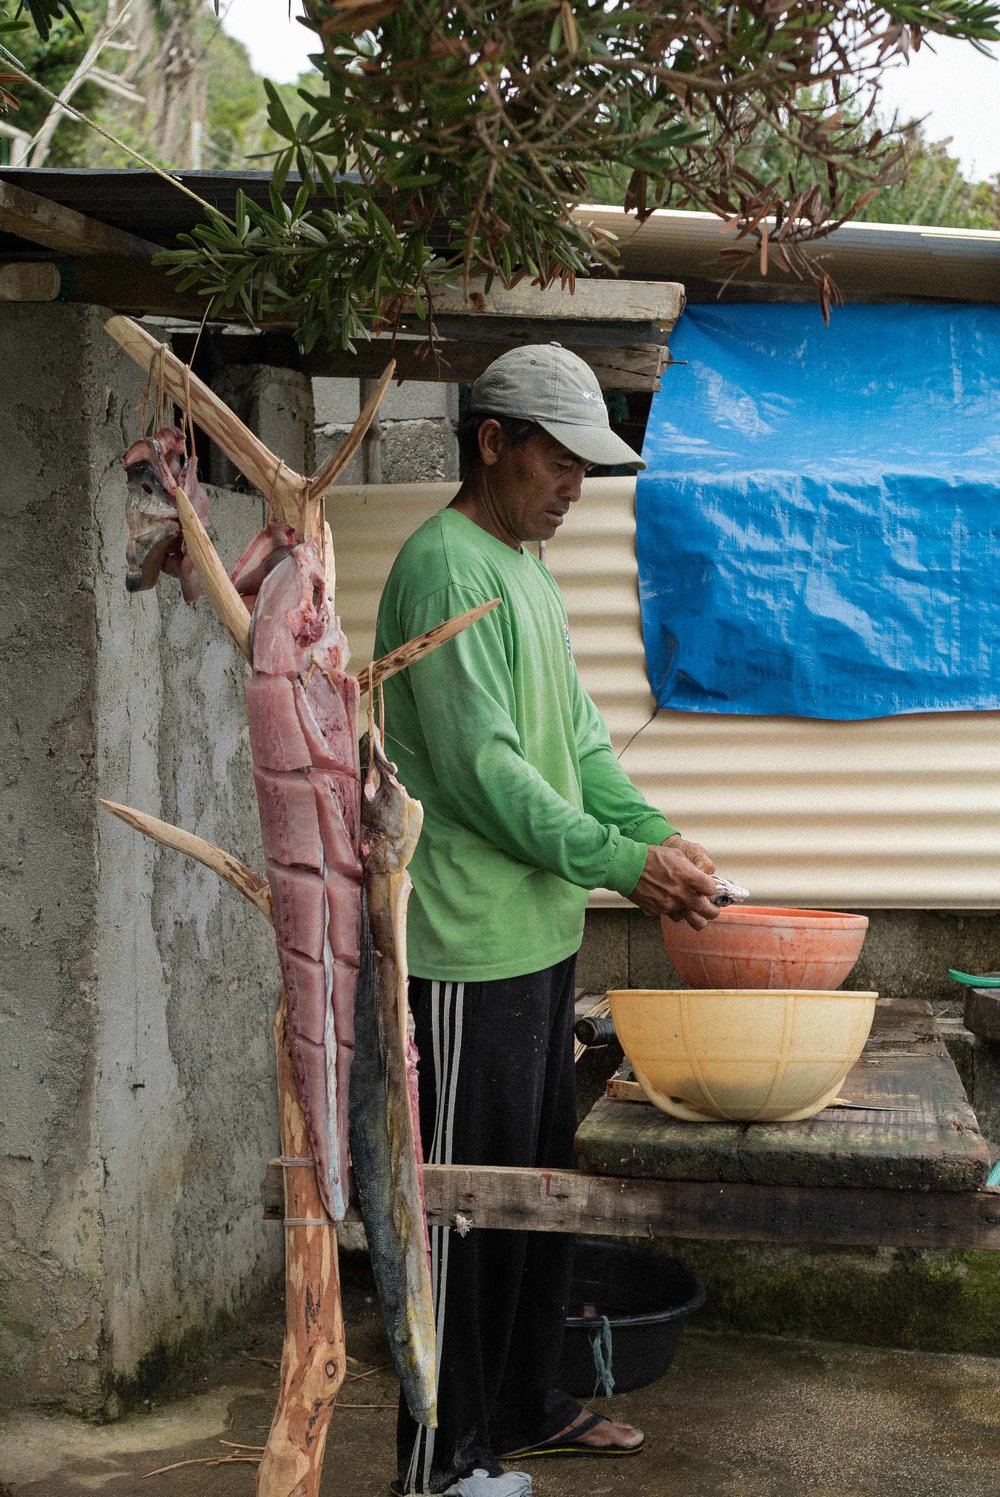 A fisherman slices and cures his morning catch. The dorados are hung outside his home to dry.